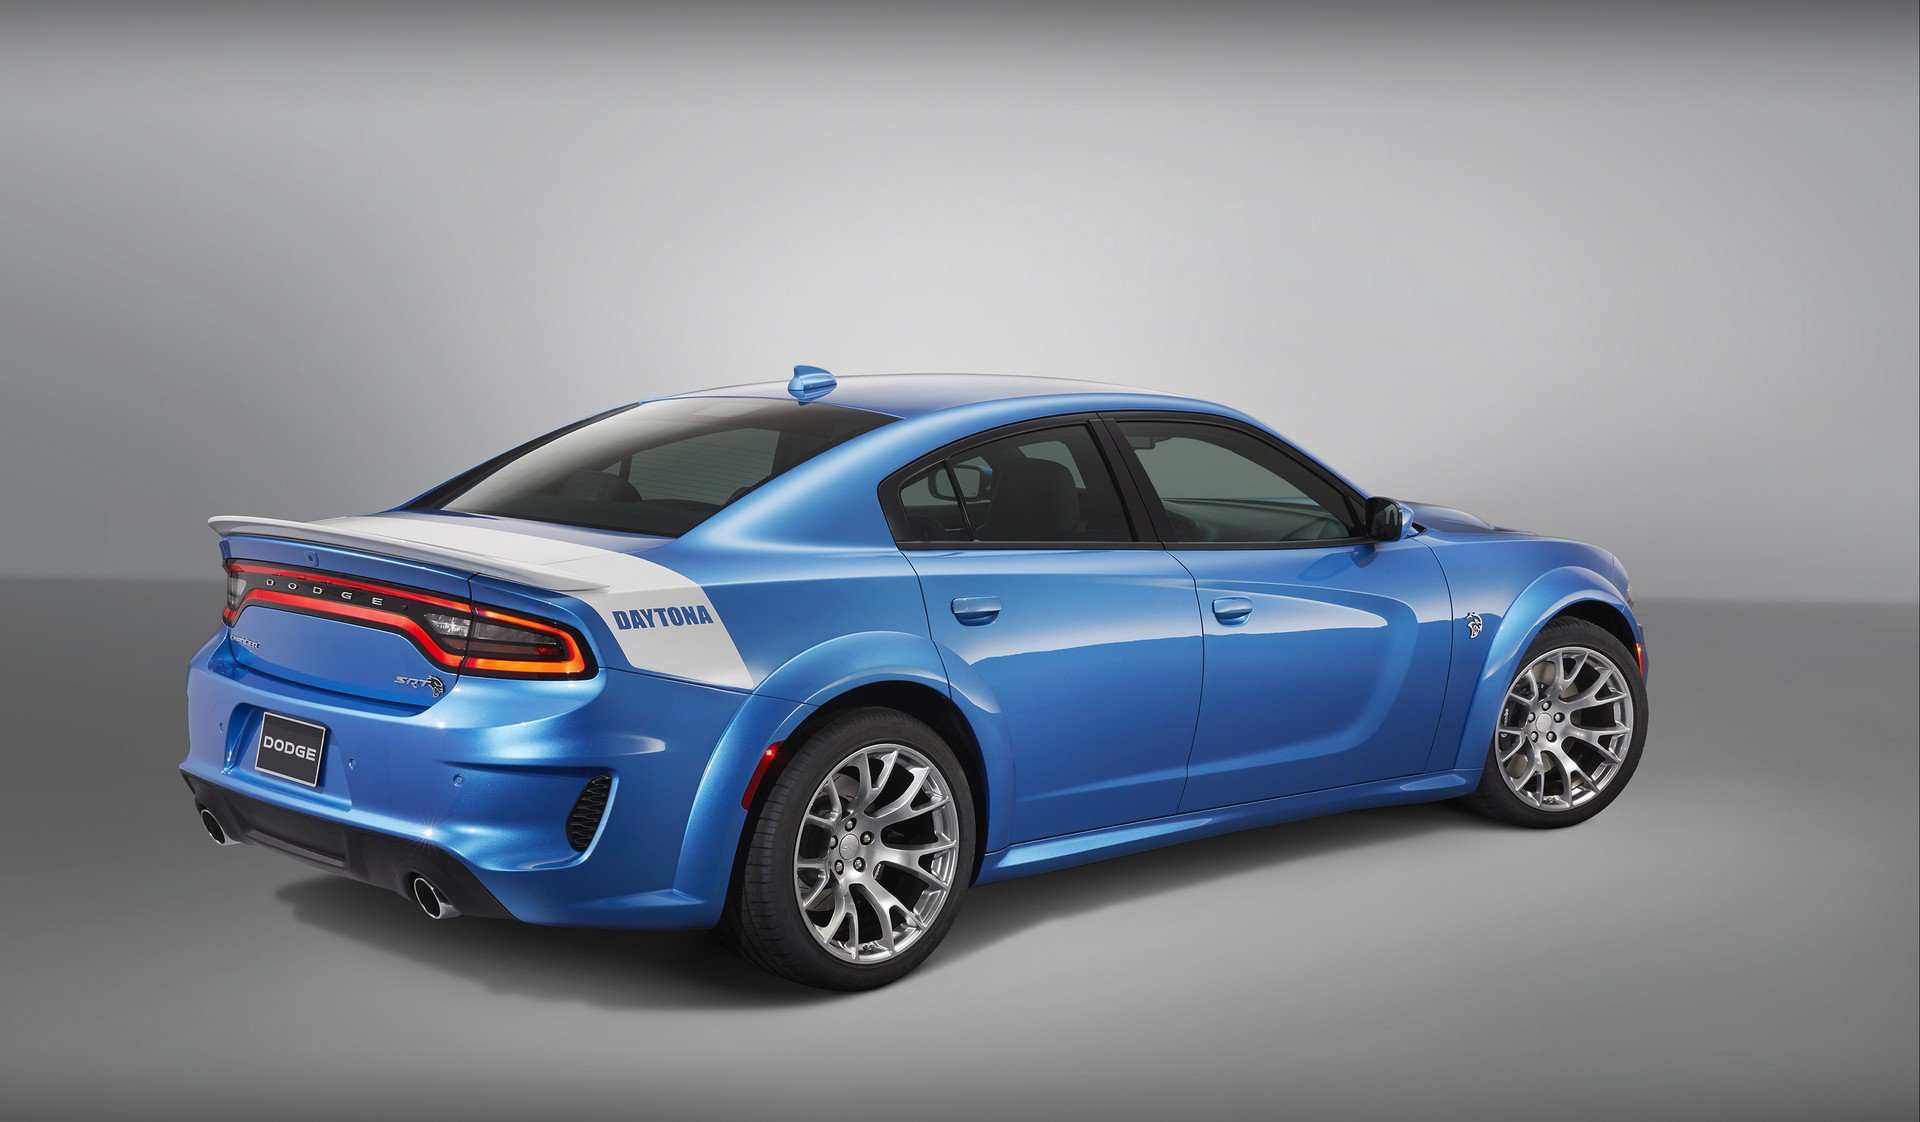 Dodge-Charger-SRT-Hellcat-Widebody-Daytona-50th-Anniversary-Edition-2